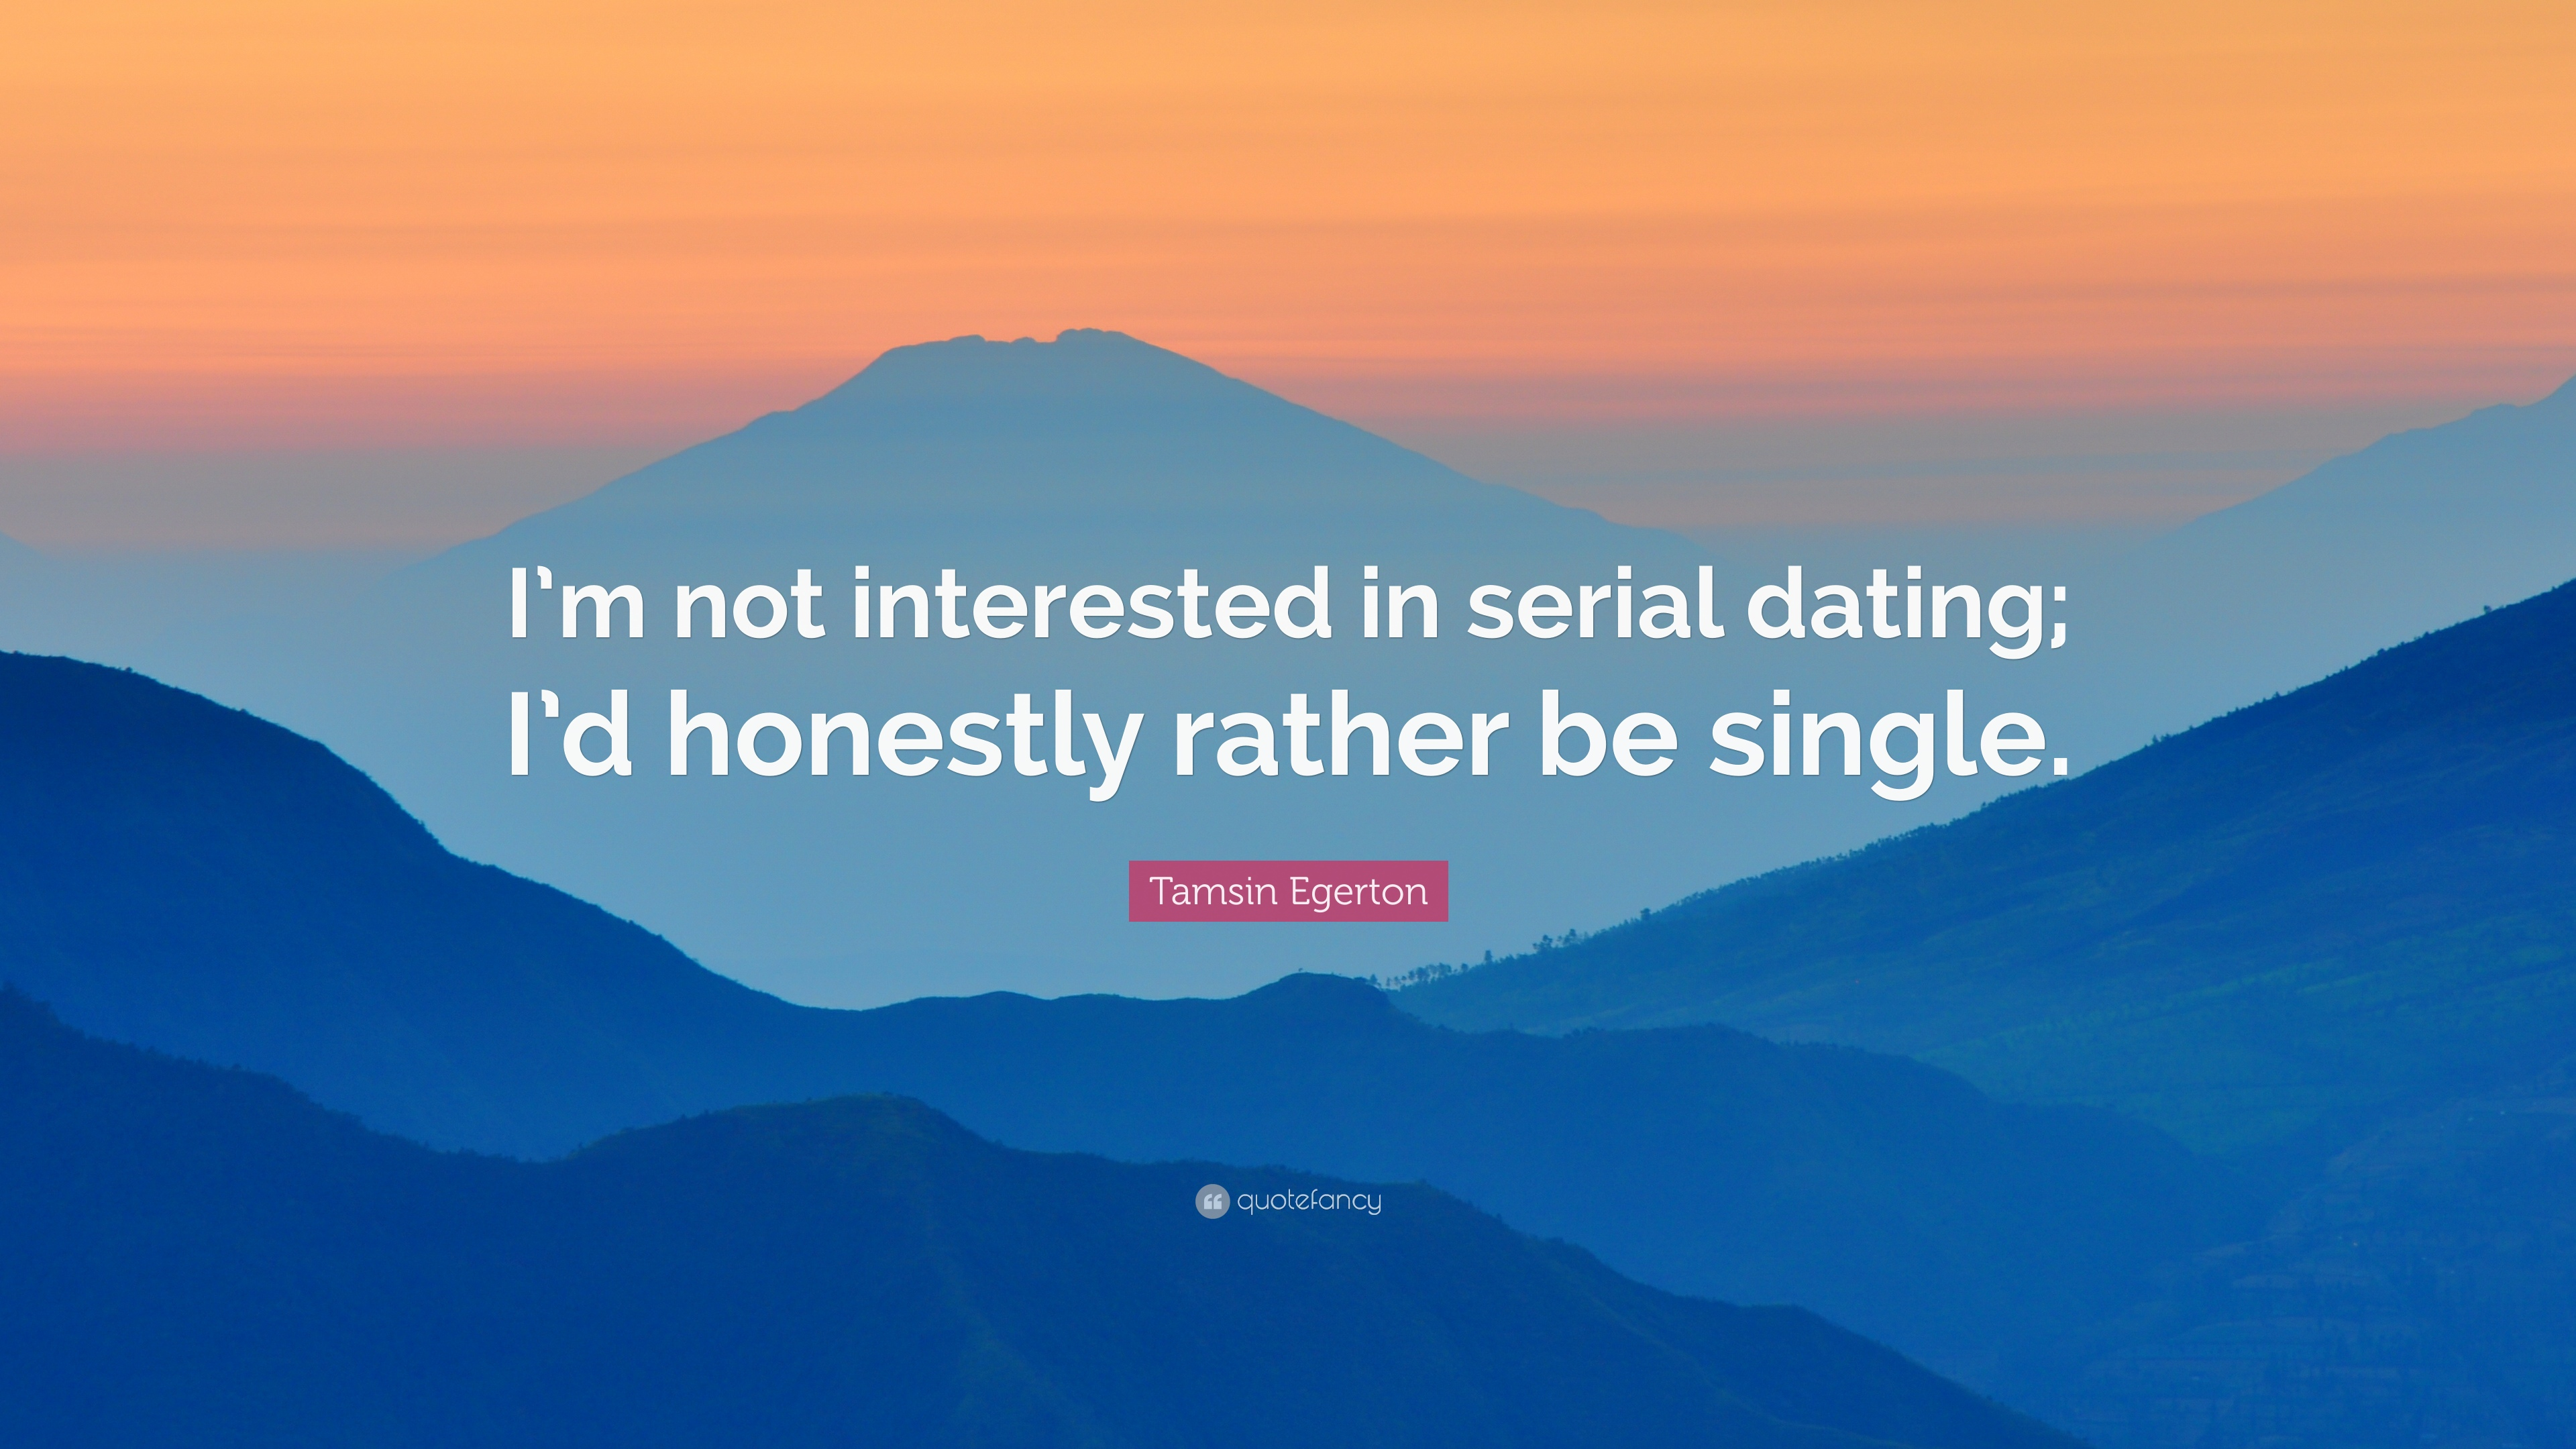 single and not interested in dating